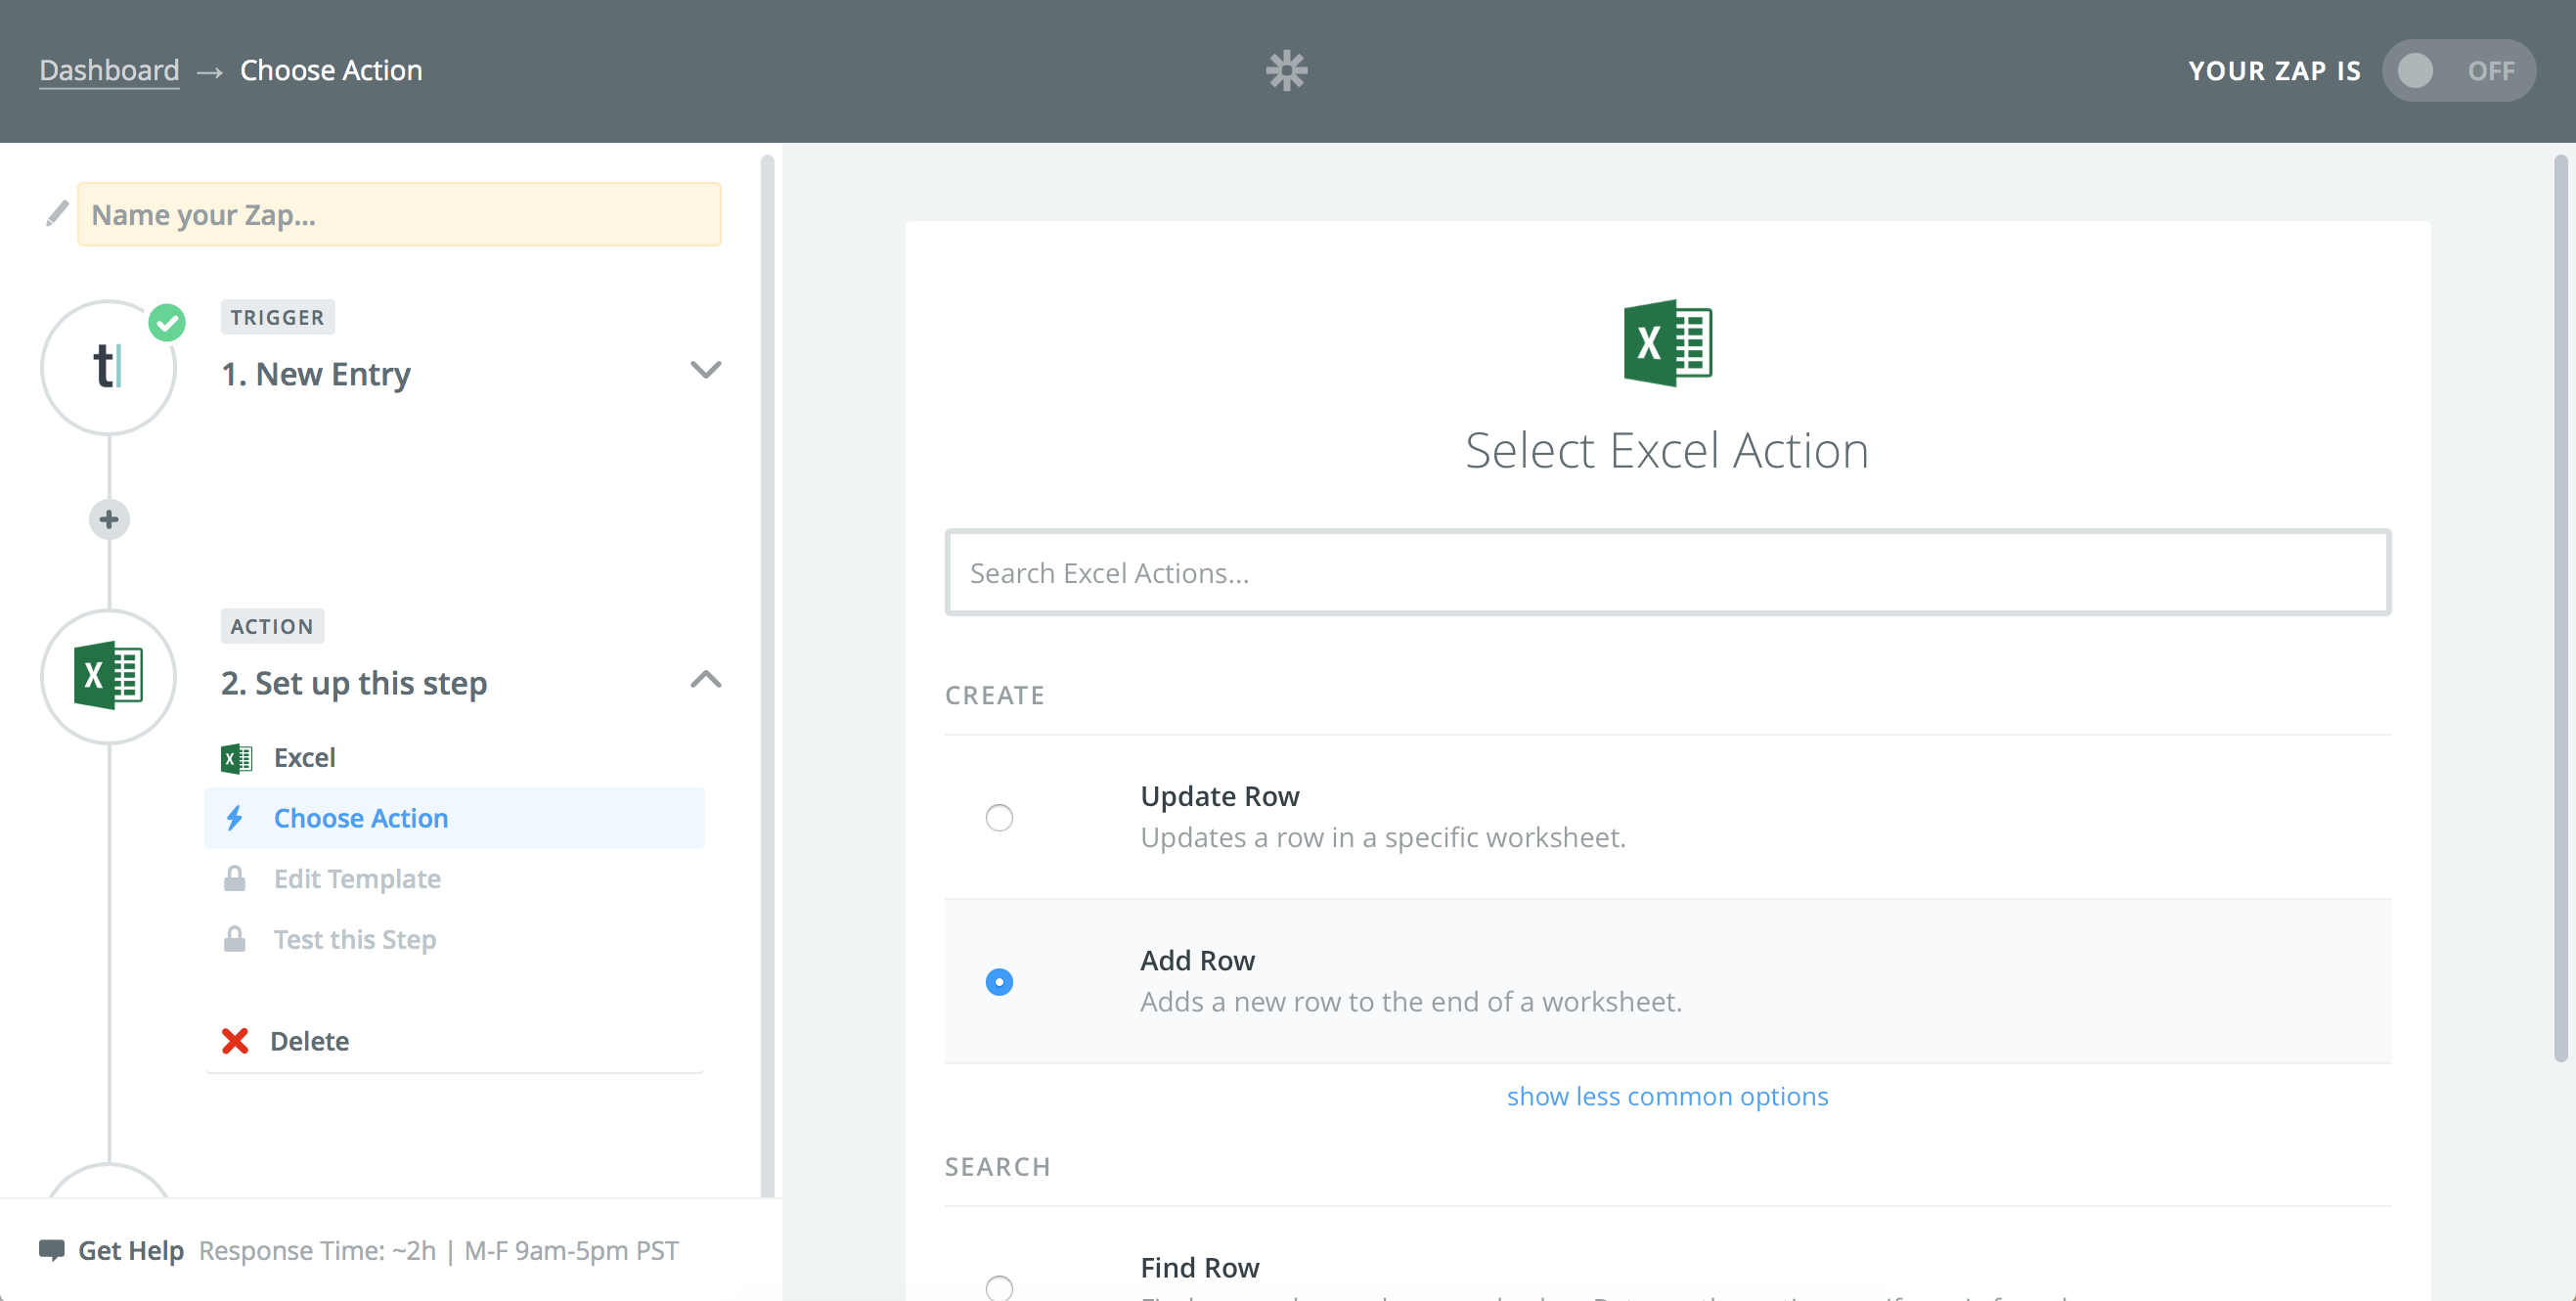 How To Make An App From An Excel Spreadsheet Regarding Excel Macros Tutorial: How To Record And Create Your Own Excel Macros